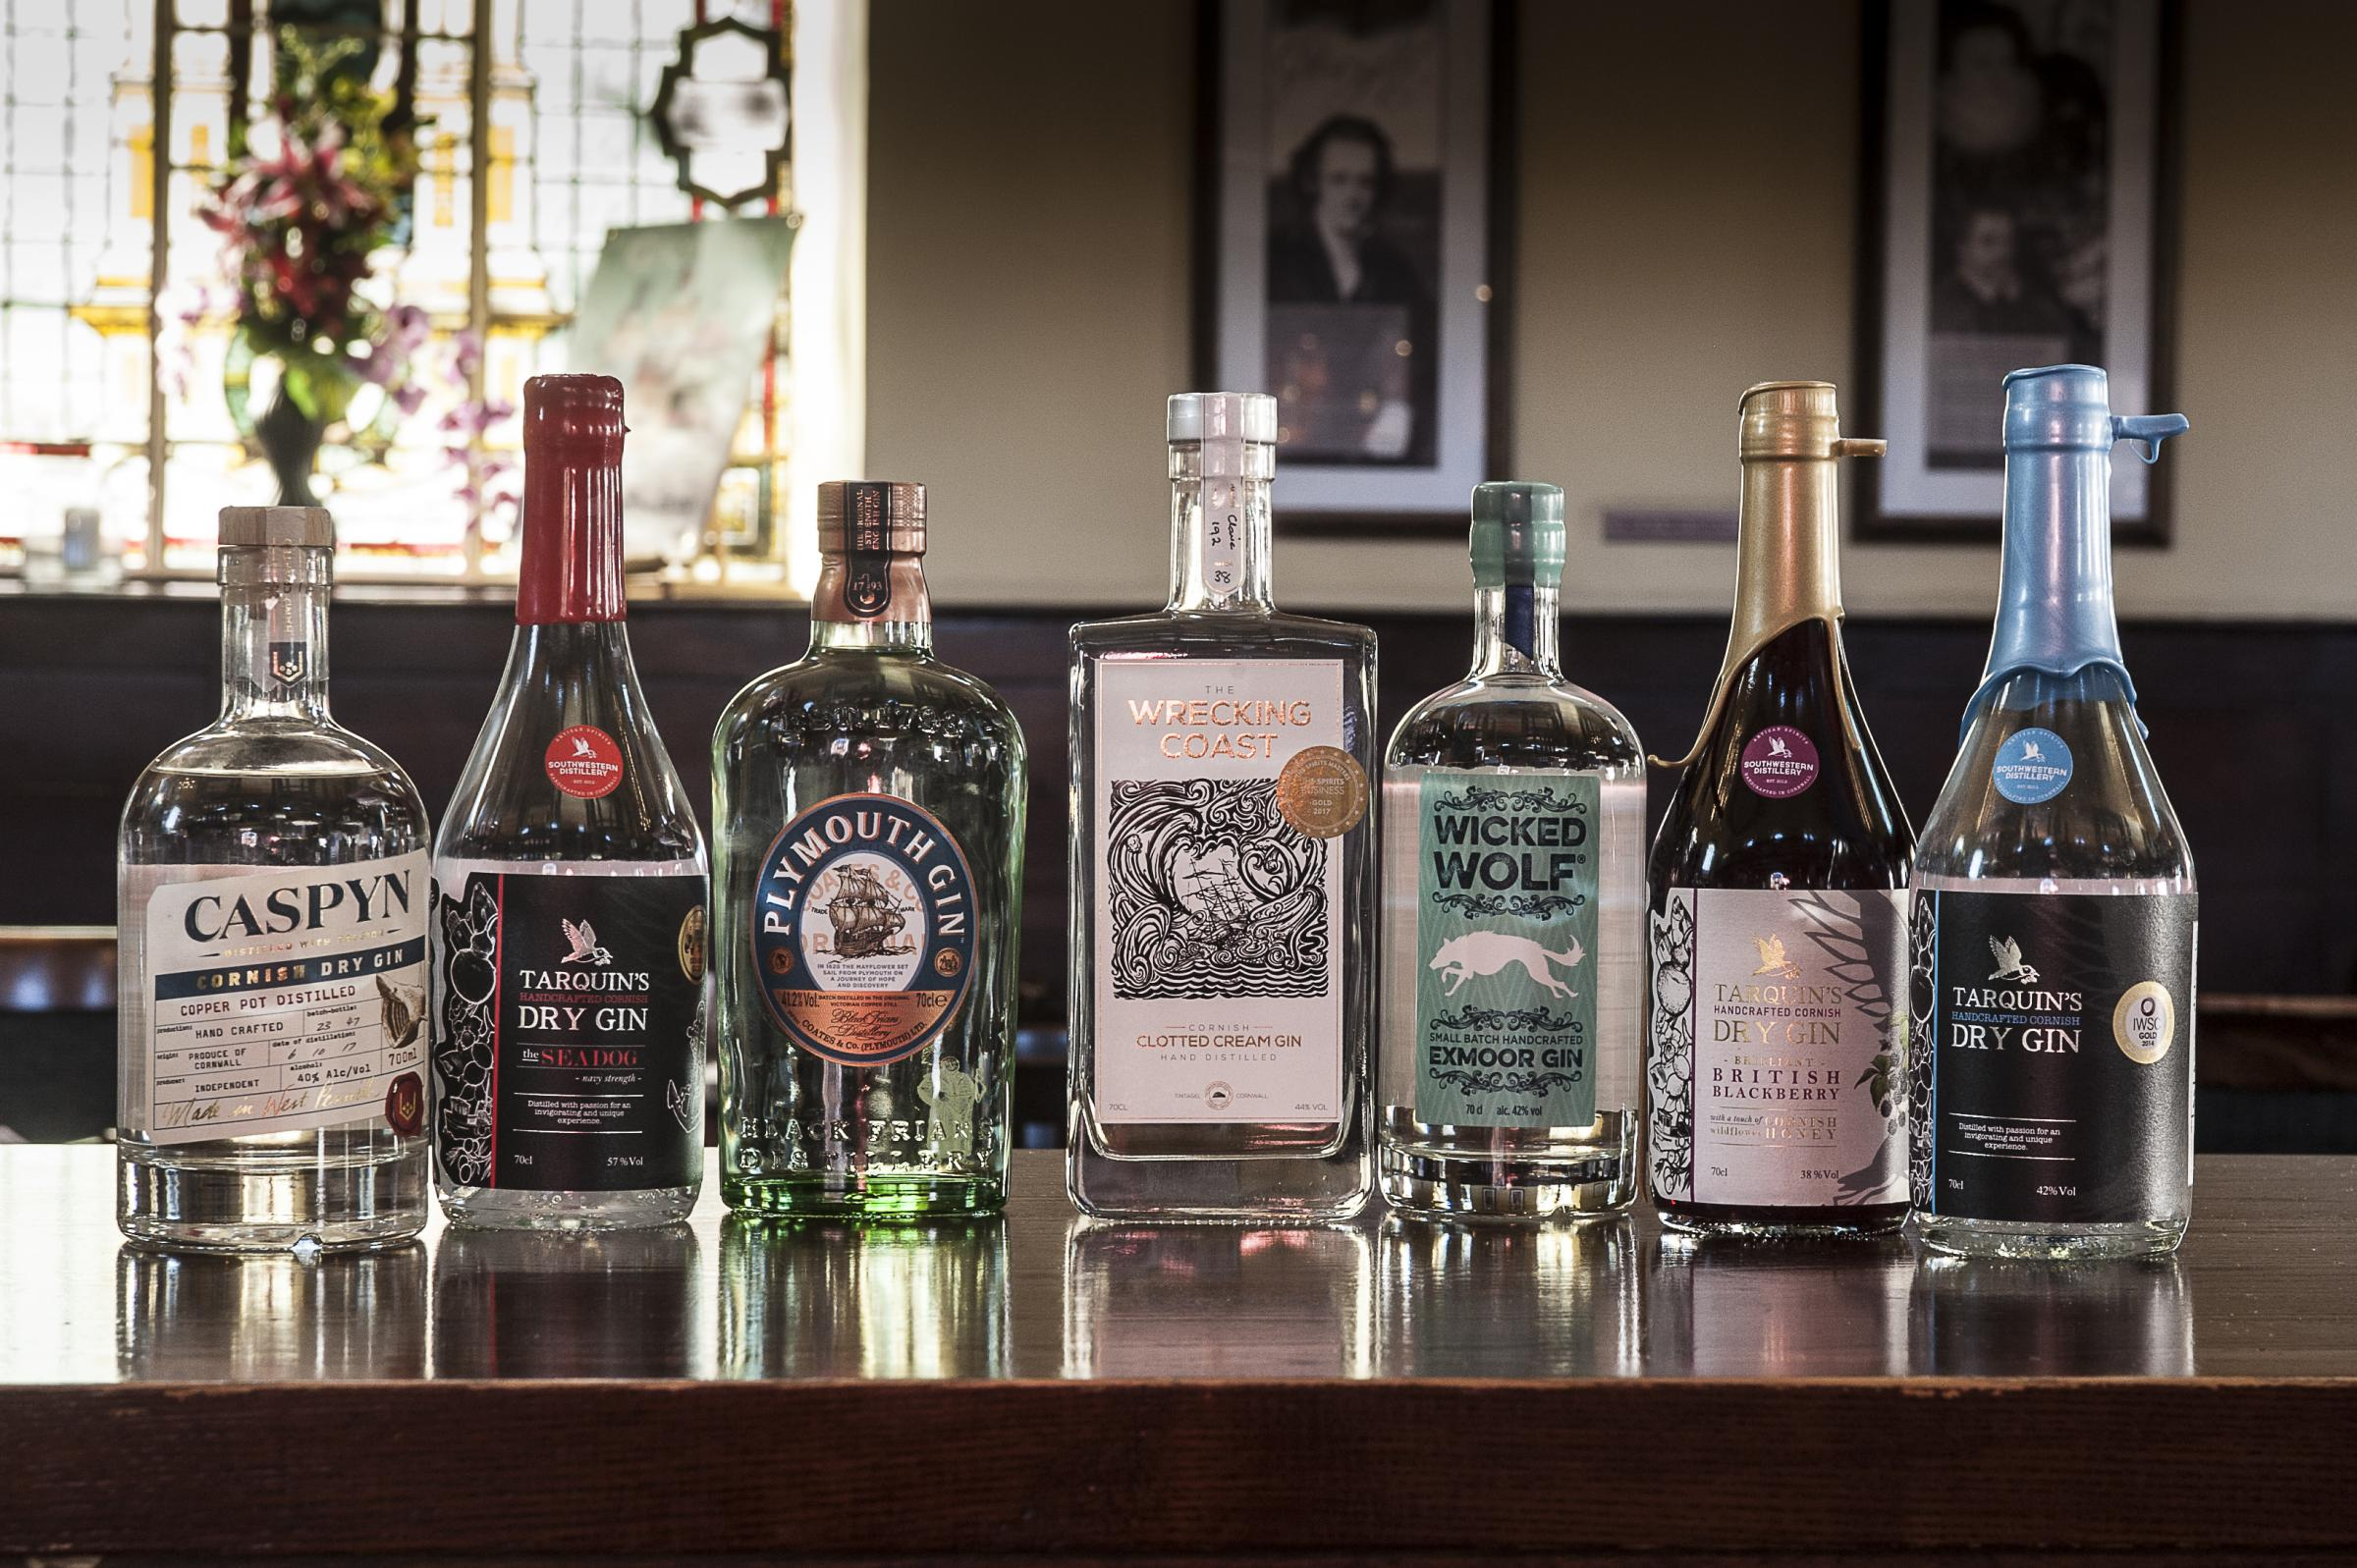 GIN FESTIVAL: Gin-lovers will be able to try 10 different gins from across the region – including one which is made on Exmoor